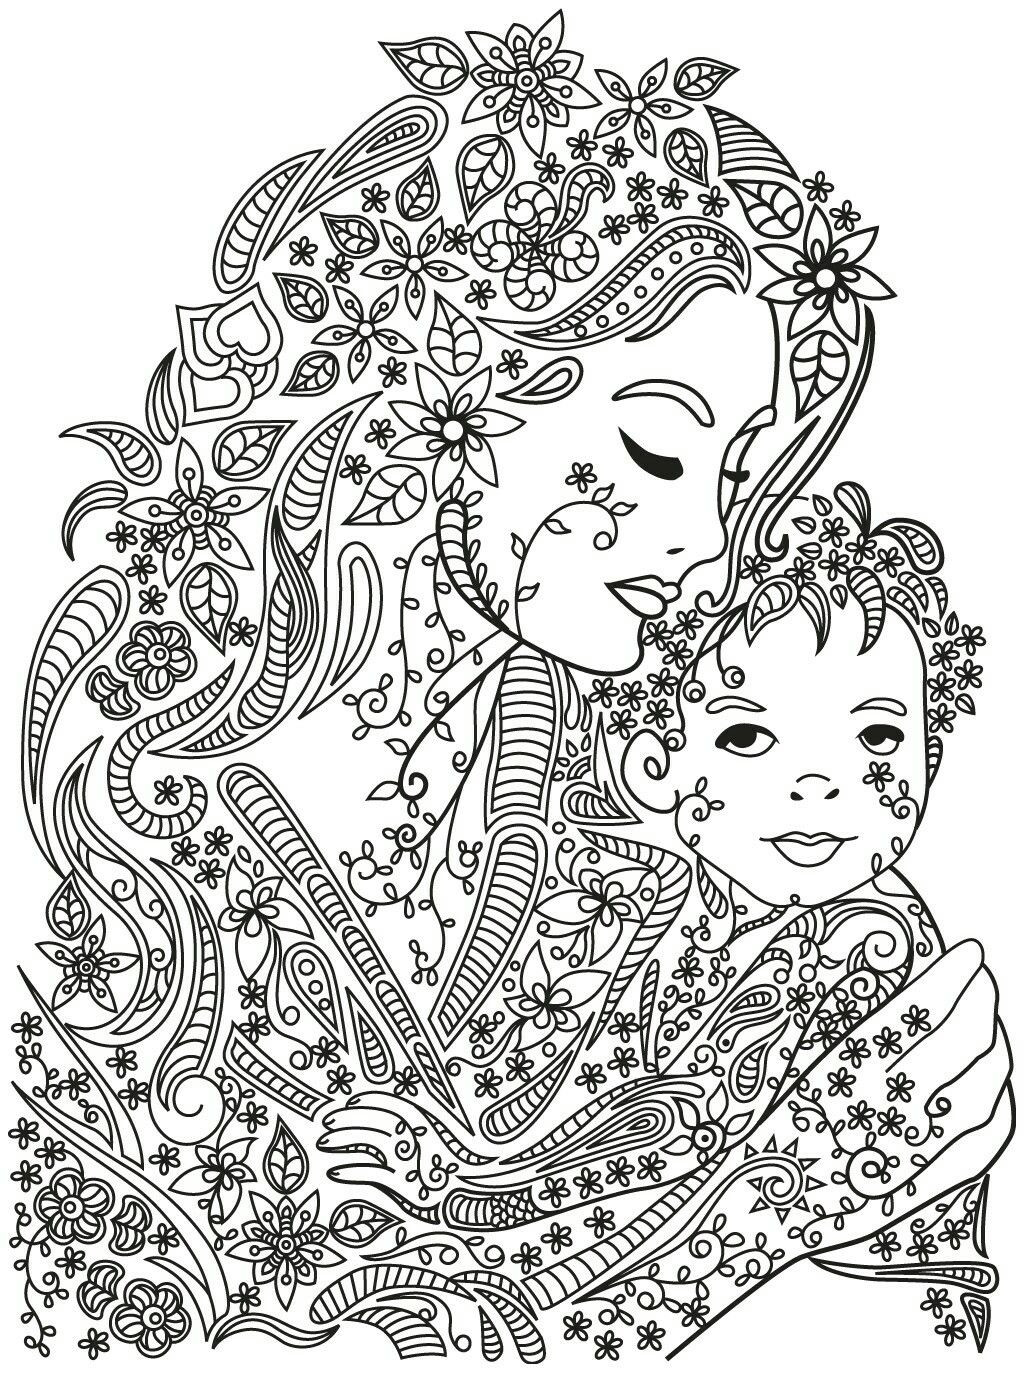 Best ideas about Mandala Animal Coloring Sheets For Girls . Save or Pin Mother and child coloring page Now.